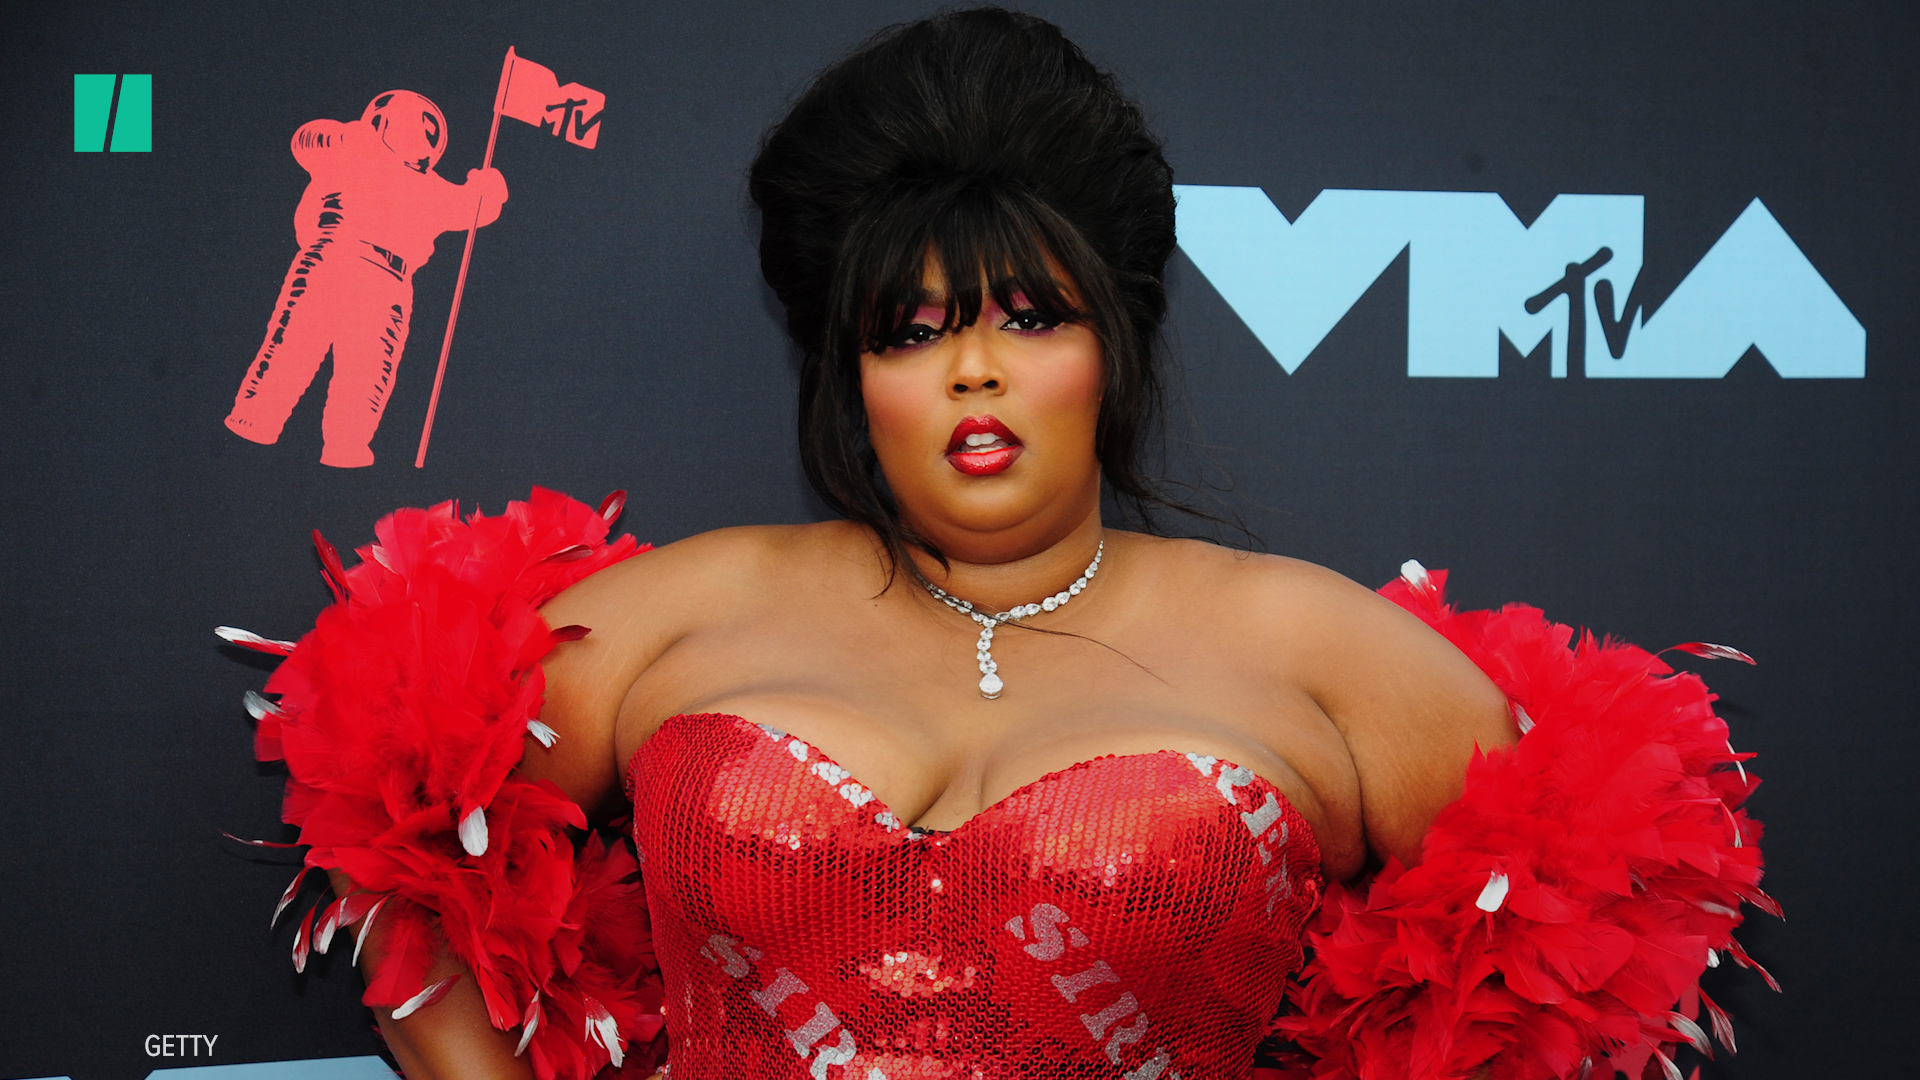 Lizzo Drips In Diamonds And Old Hollywood Glamour On Grammys Red Carpet